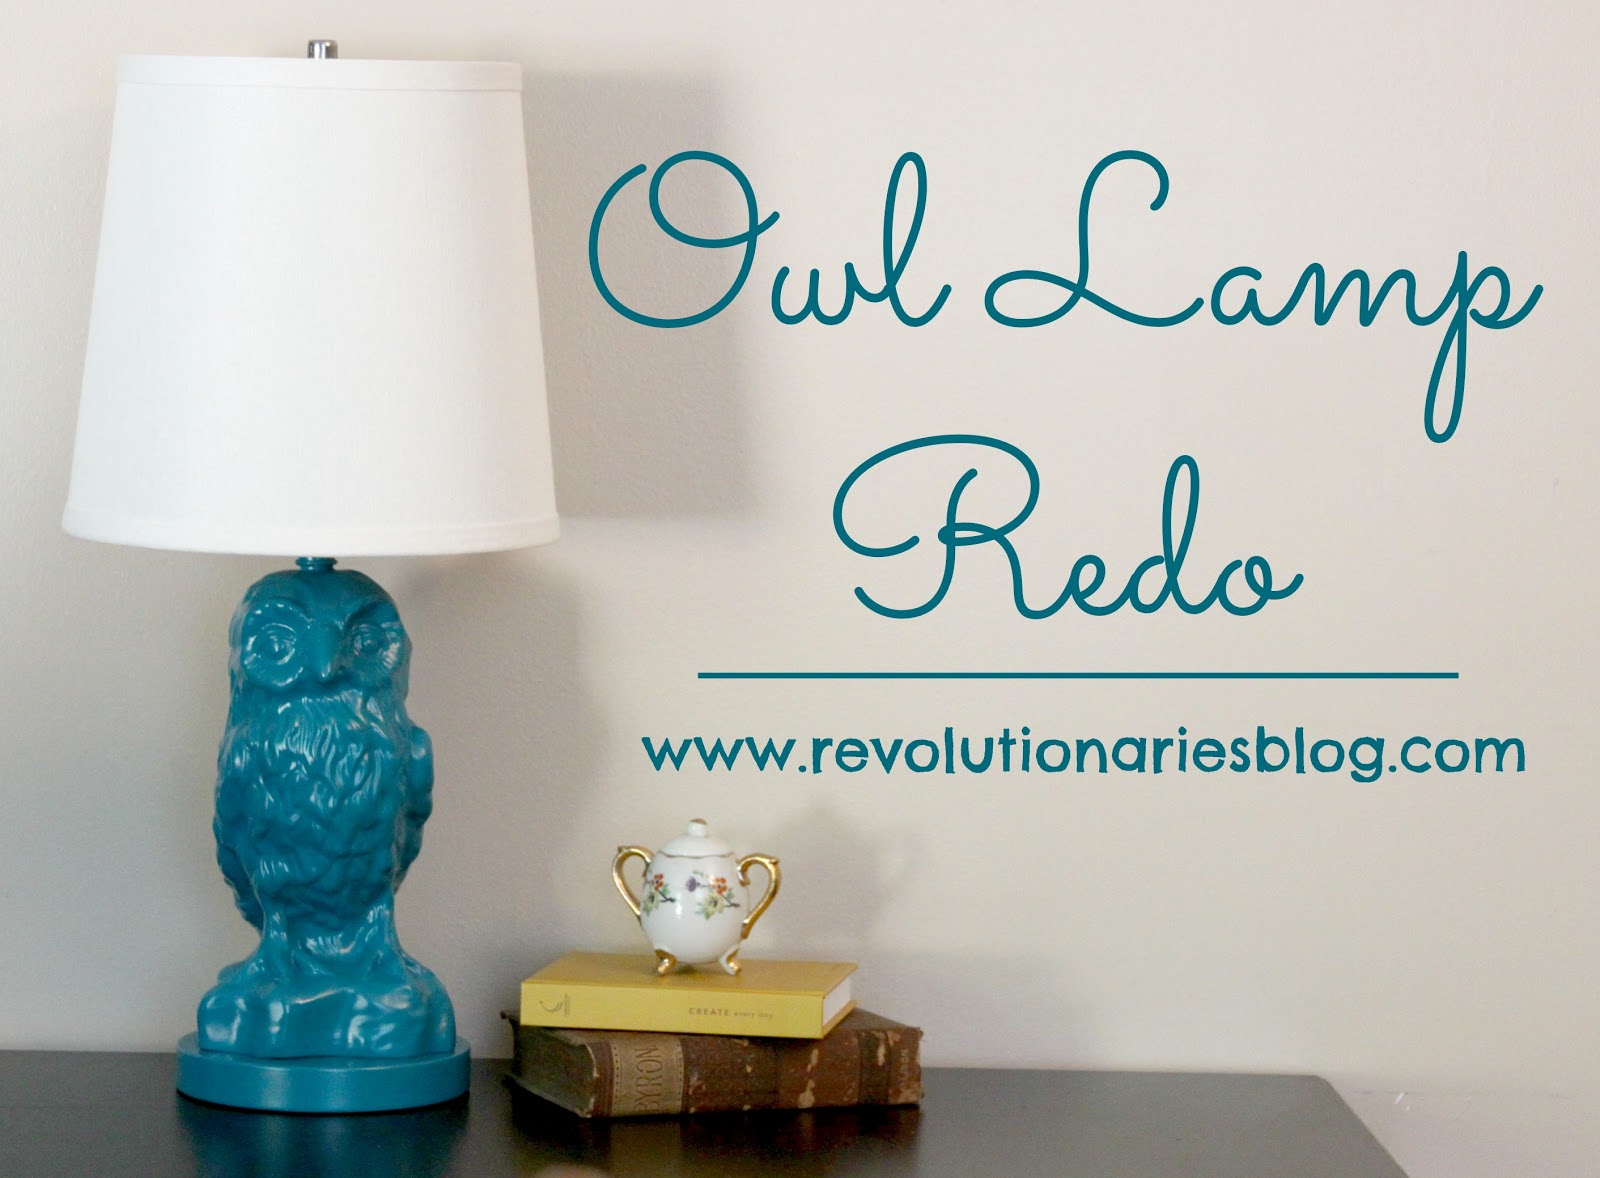 owl-lamp-redo-with-text.jpg